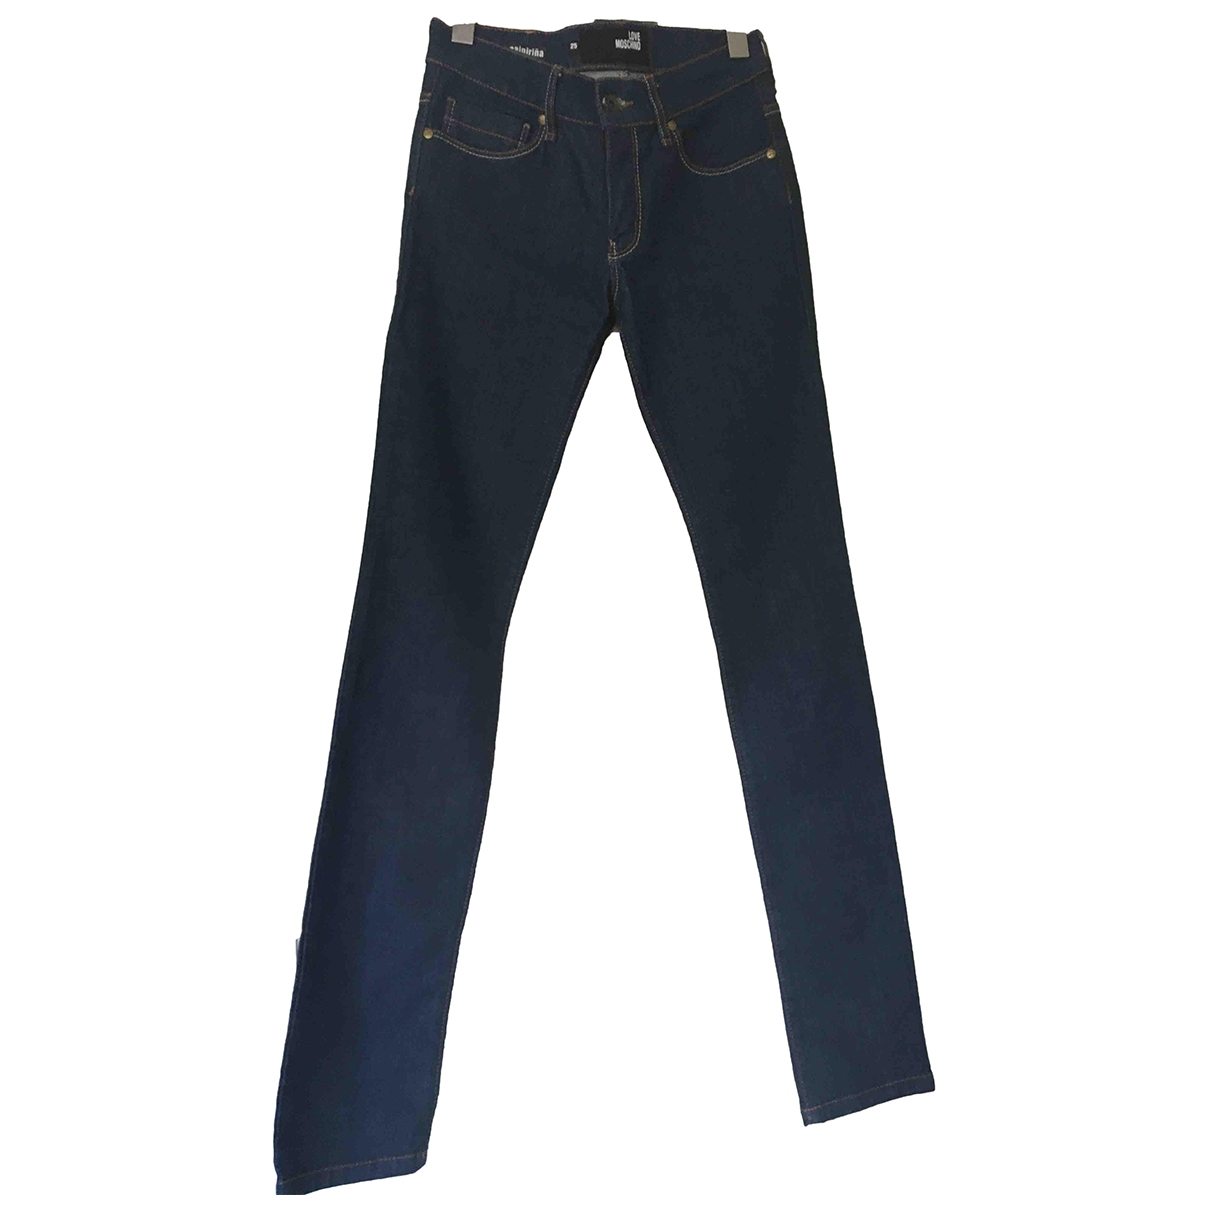 Moschino Love \N Blue Denim - Jeans Jeans for Women 34 FR